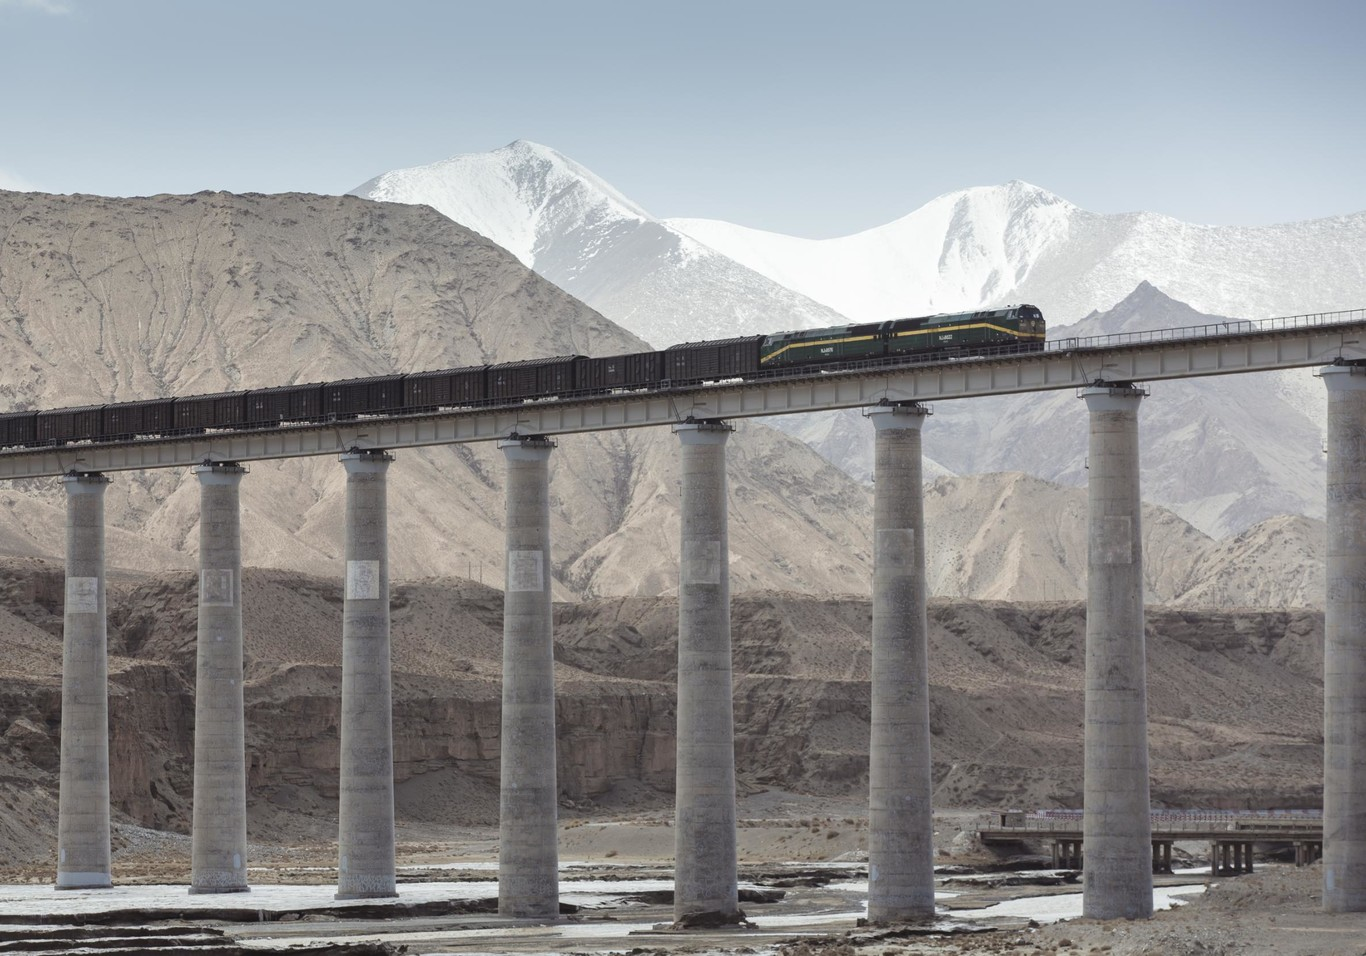 A freight convoy crossing the Tibetan plateau on the Tibet line, supervised by Alstom's ITCS system. | Copyright/Ownership: Alstom / A.Février